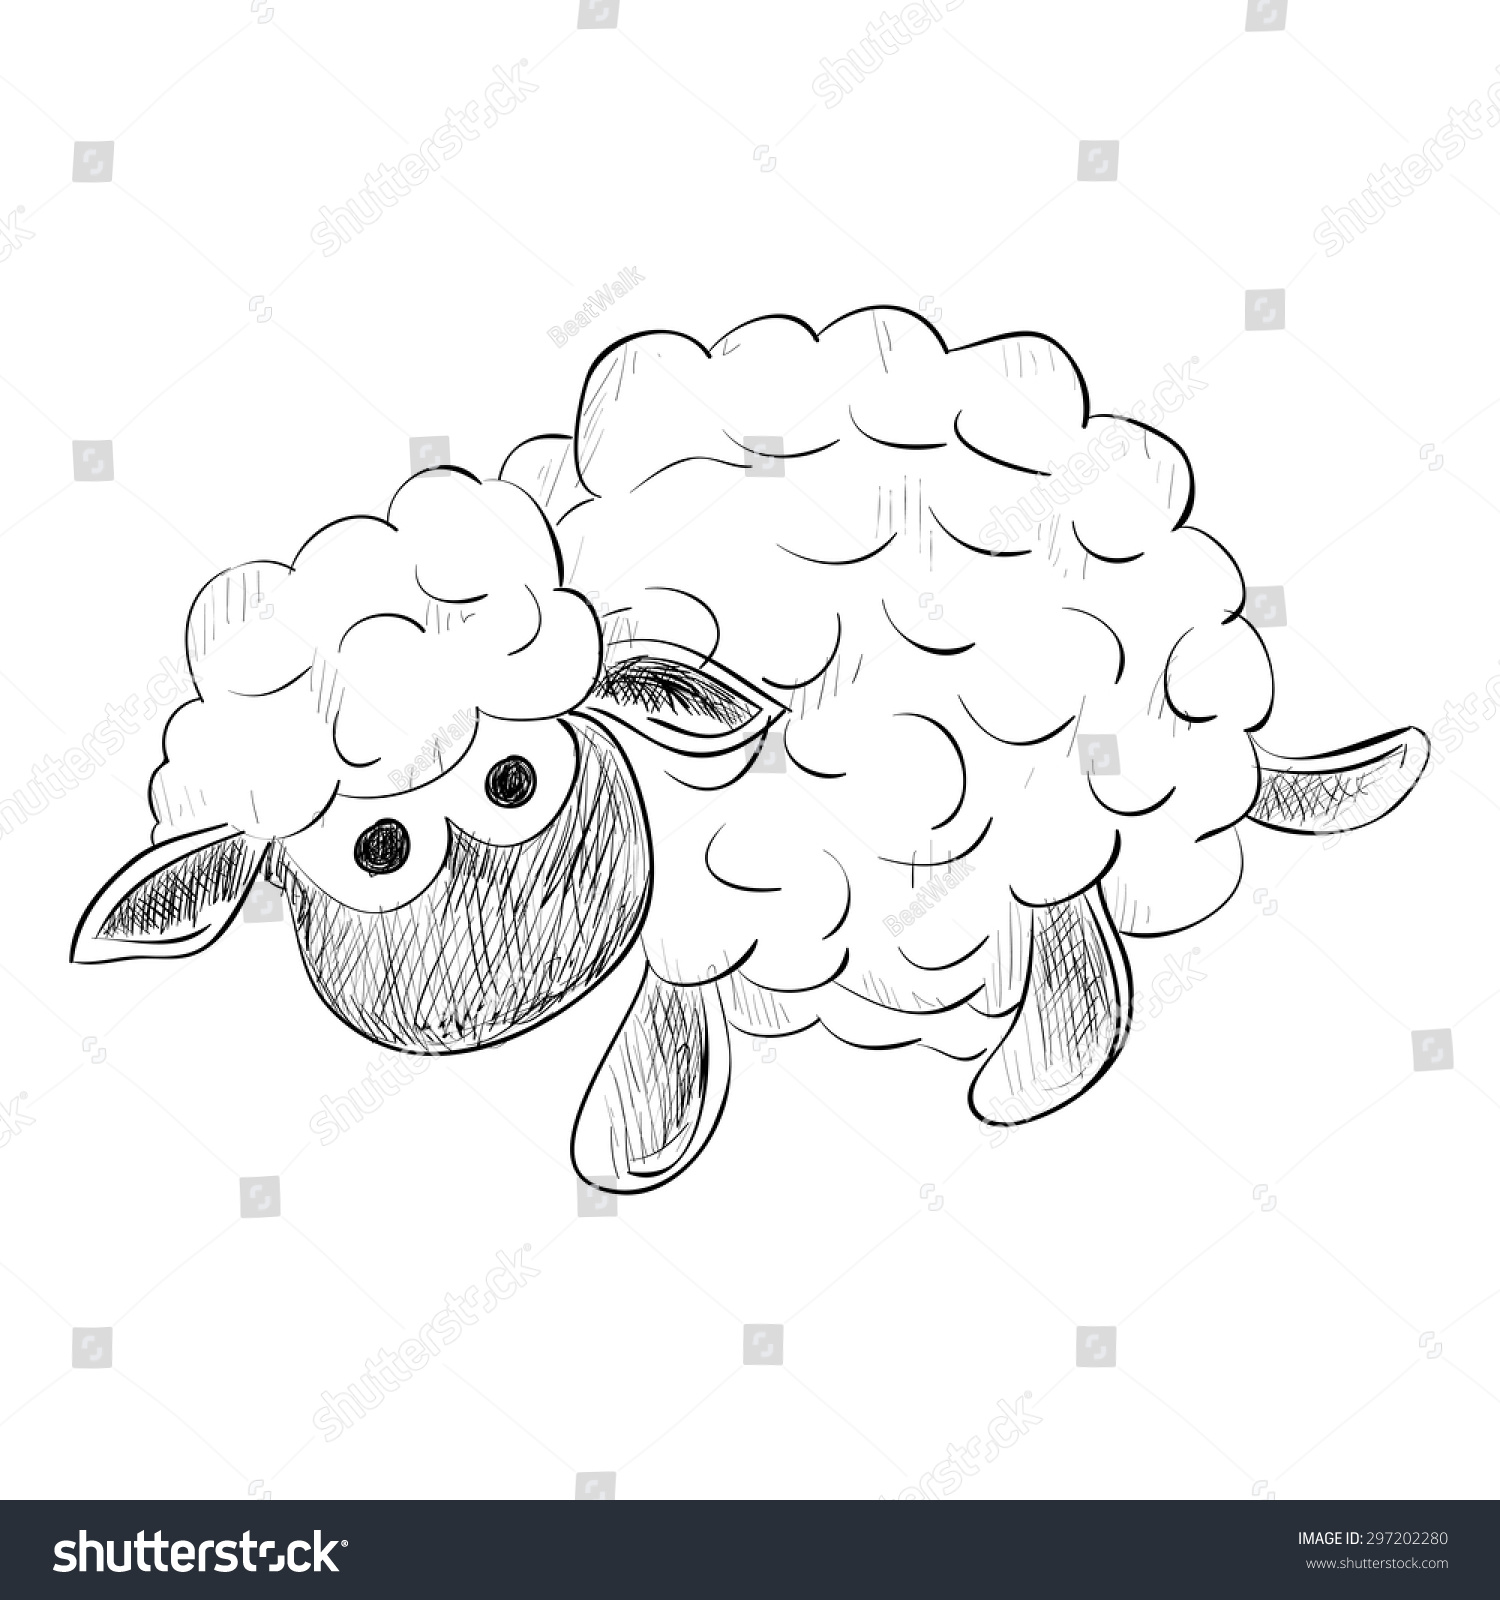 vector sketch of toy sheep hand draw illustration